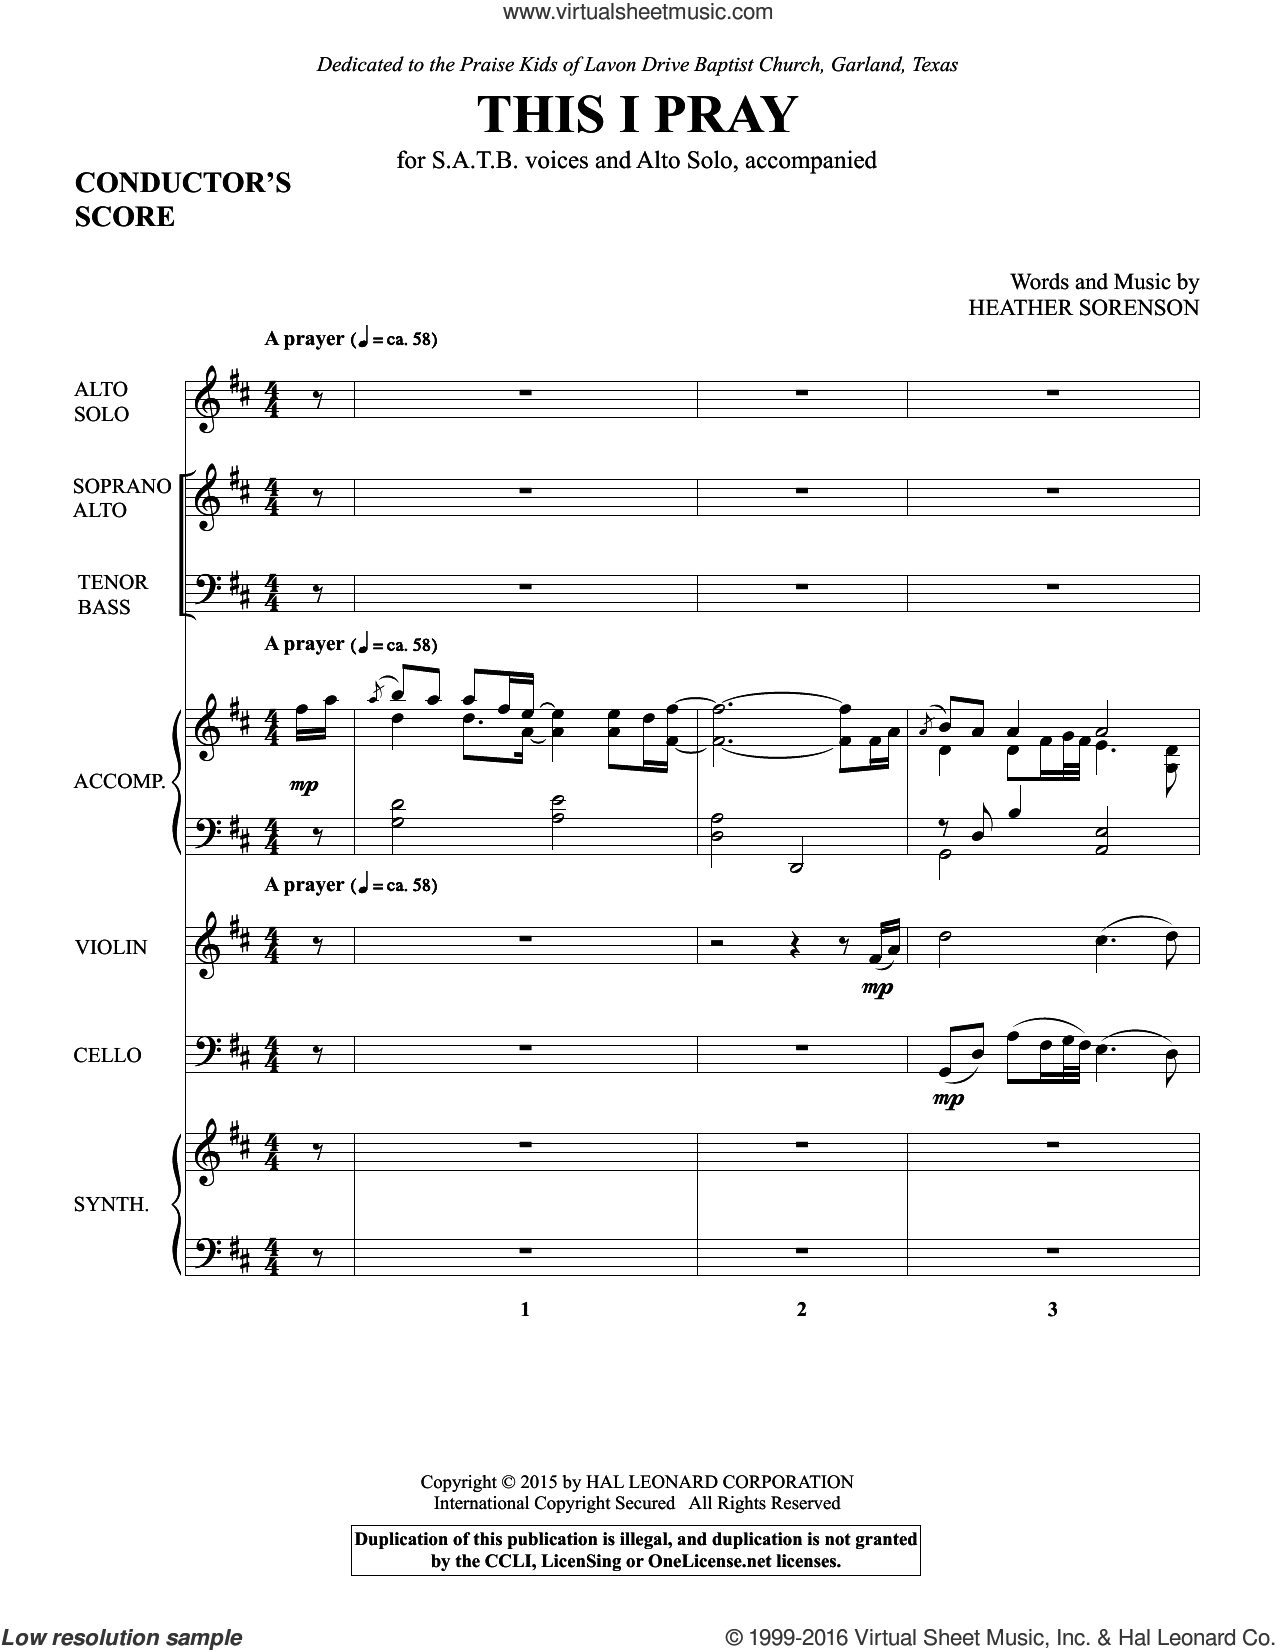 This I Pray (COMPLETE) sheet music for orchestra by Heather Sorenson